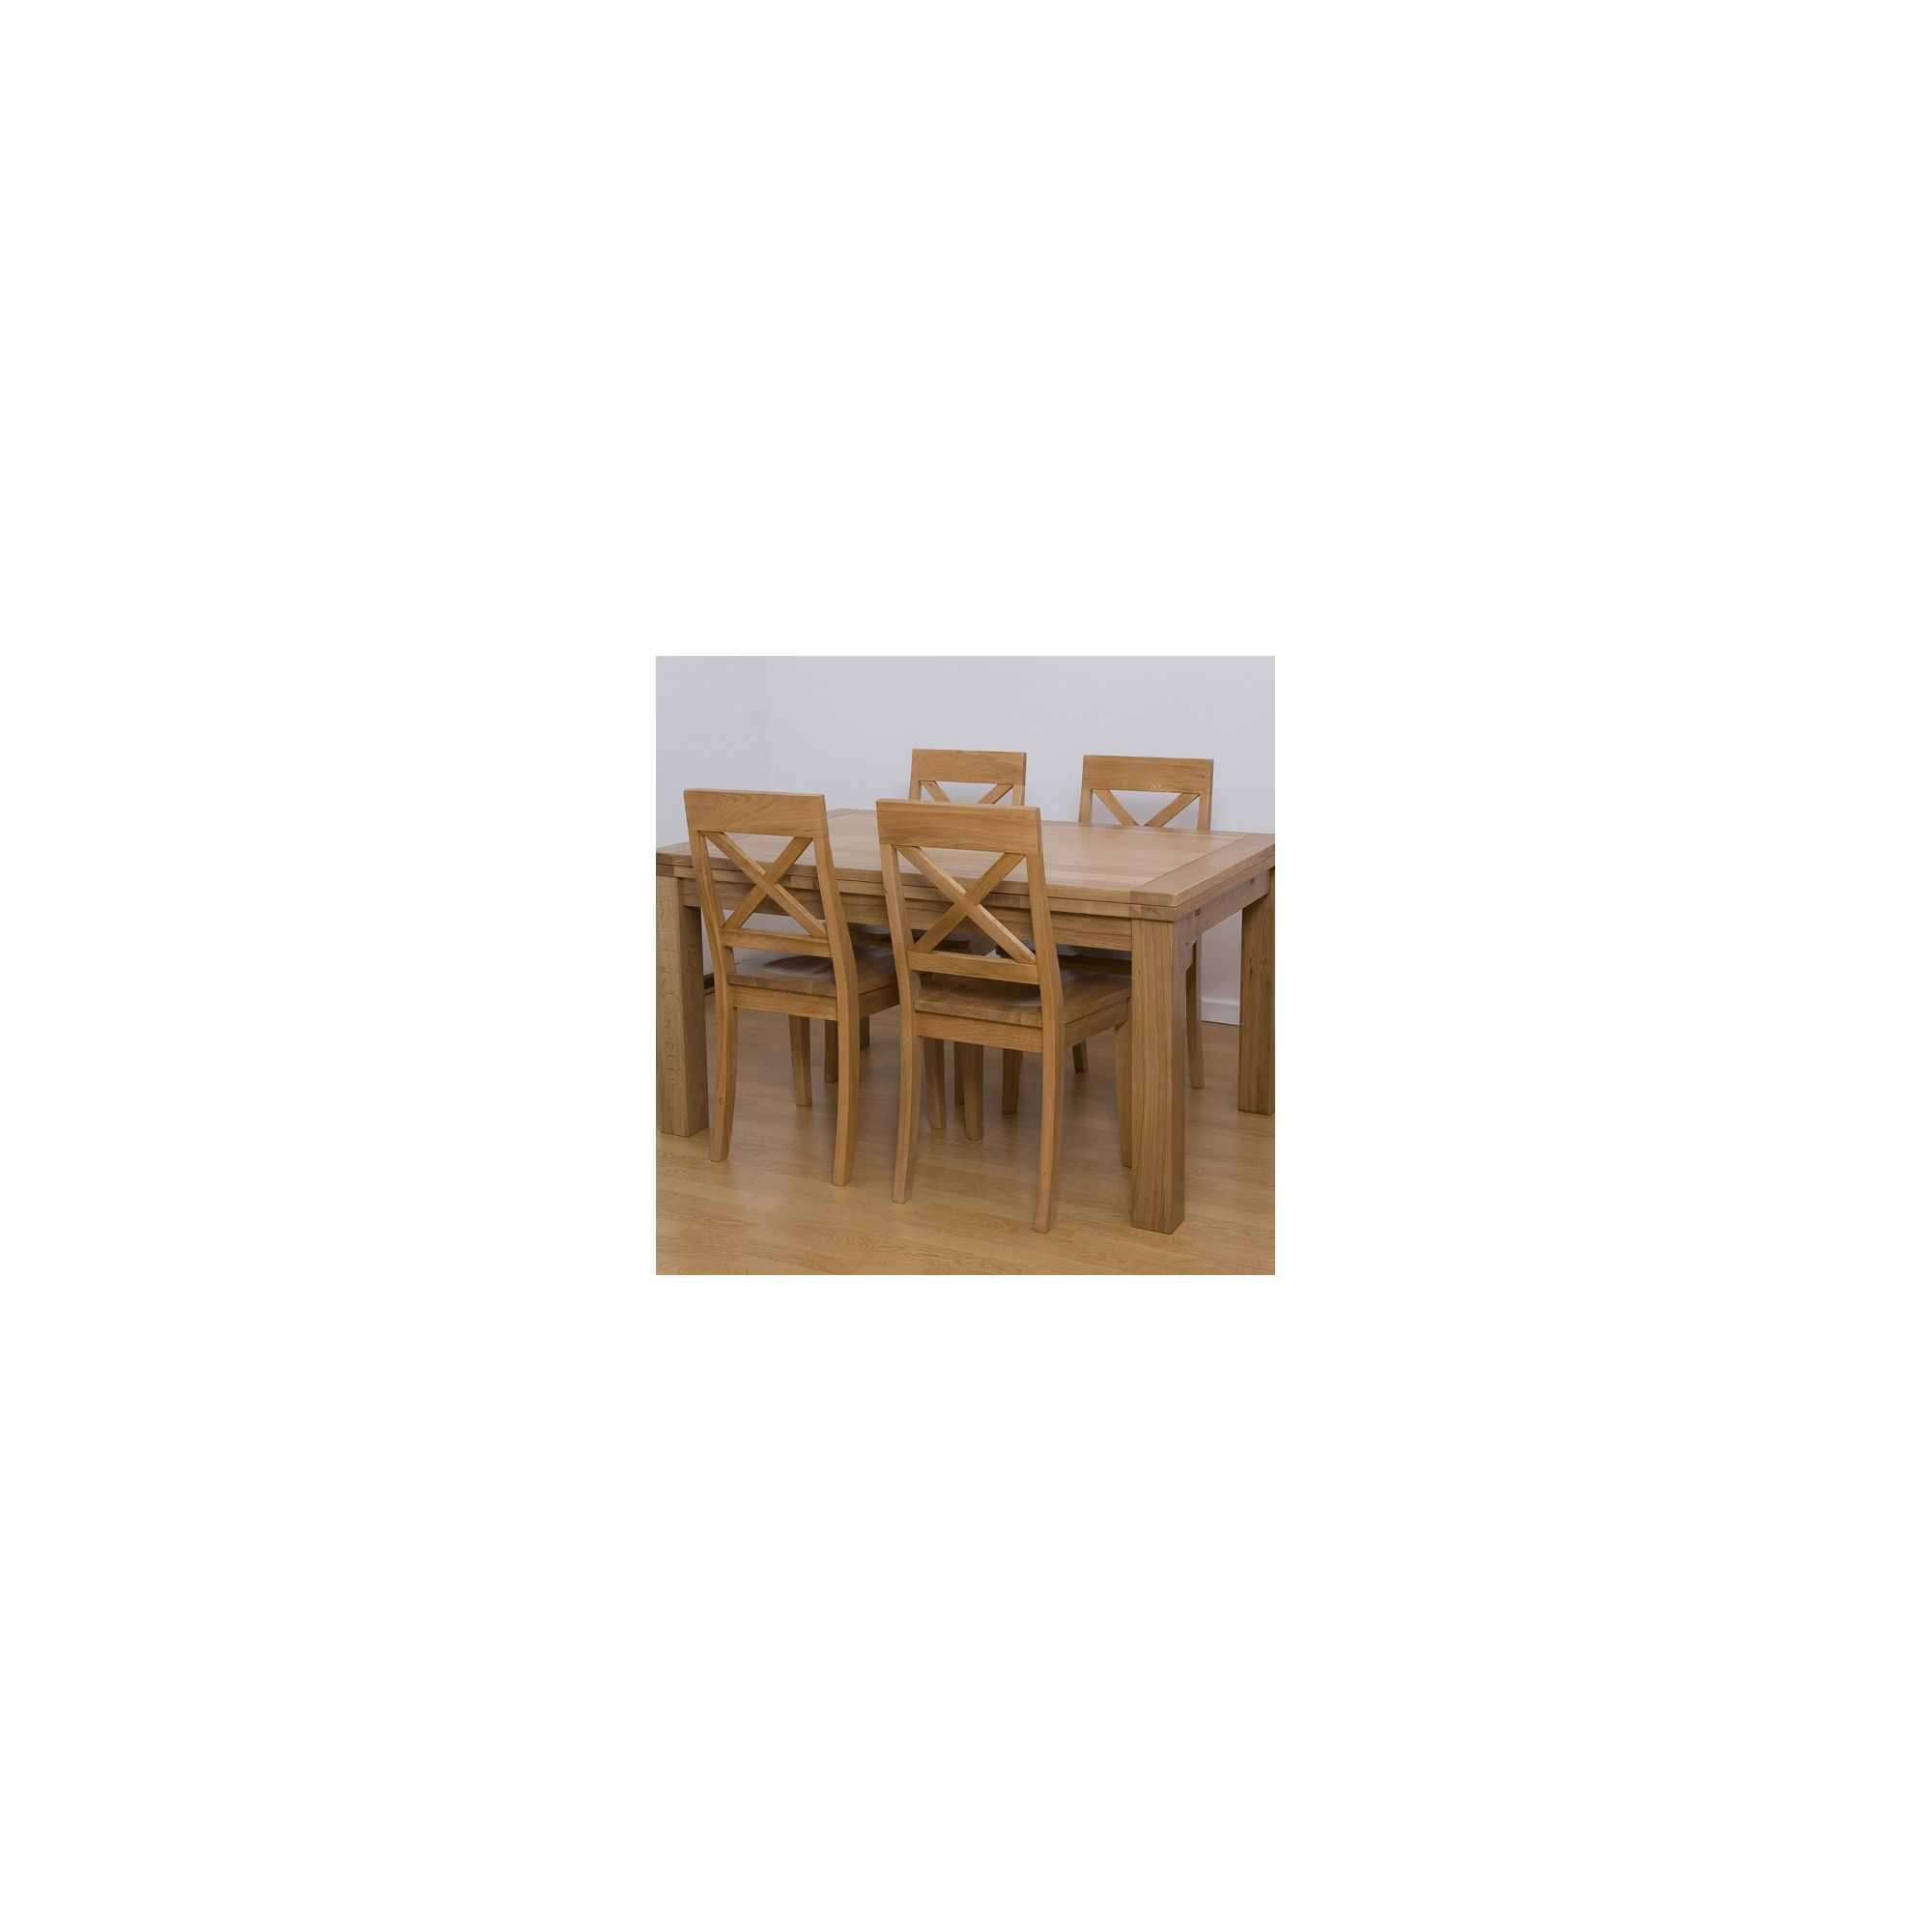 G&P Furniture 5 Piece Rectangular Extending Oak Dining Set - 76.2cm H x 120cm - 180cm W x 80cm D